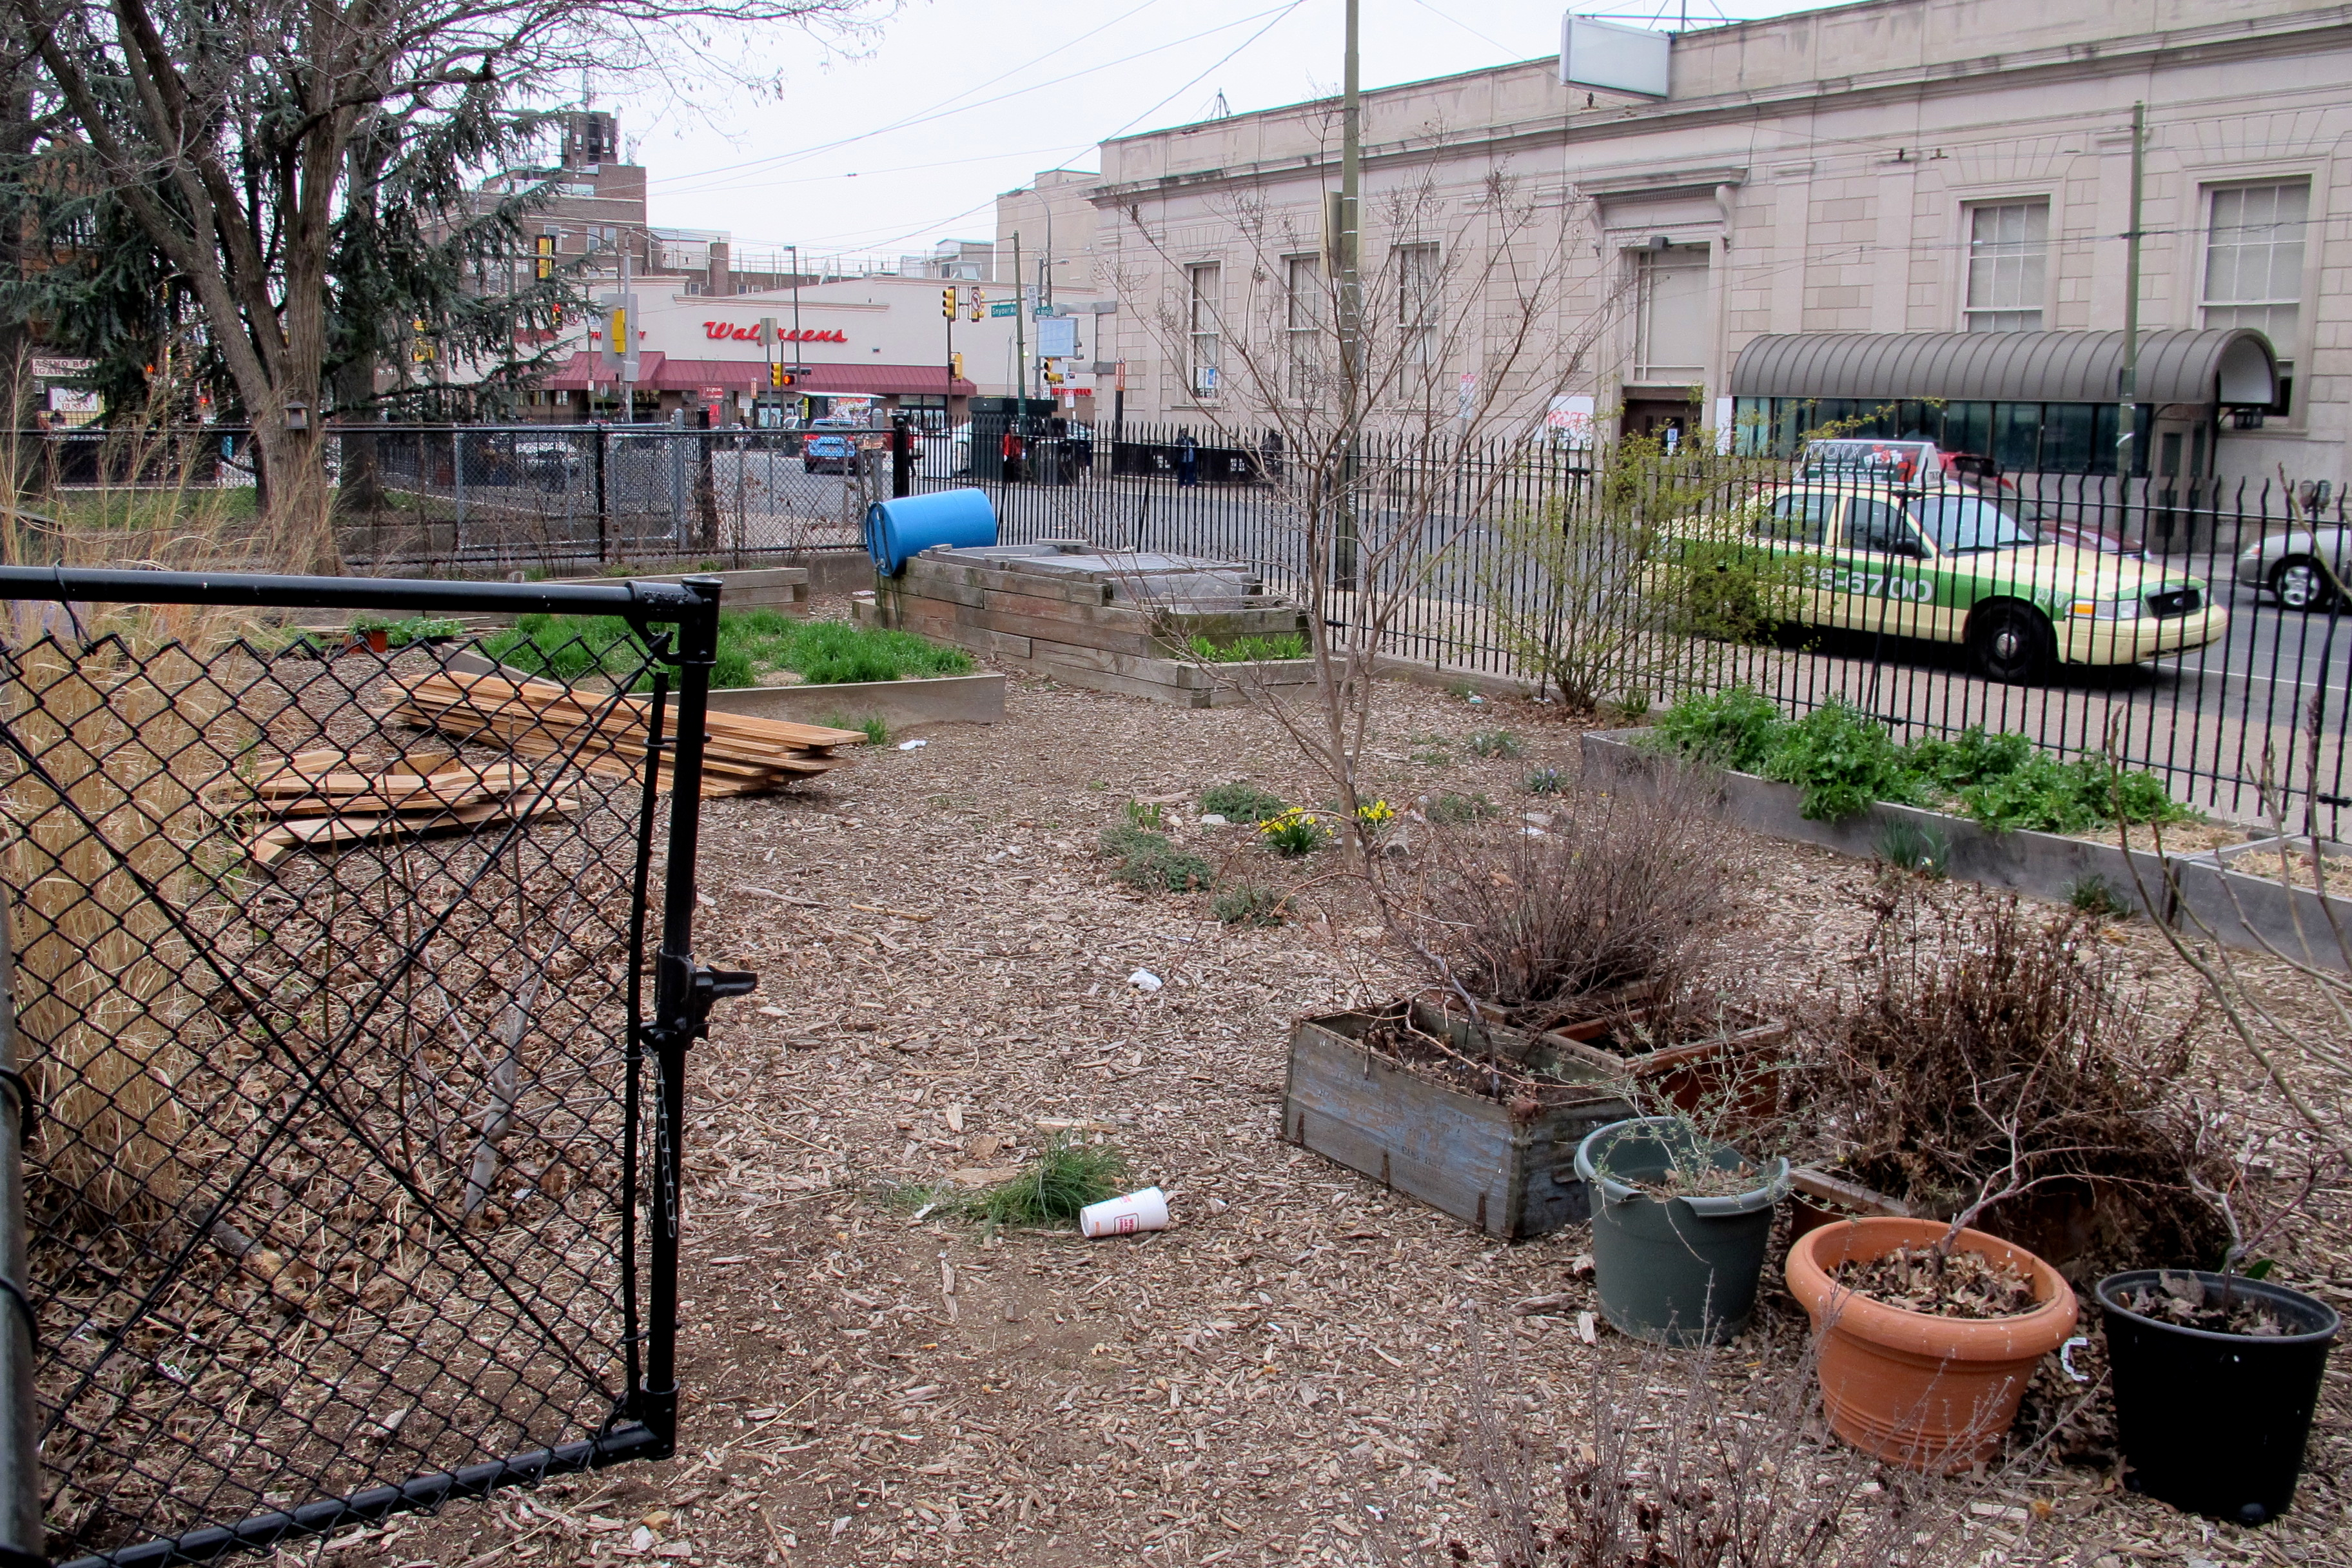 The garden along Snyder Avenue will get new raised beds this year where more produce can be grown.